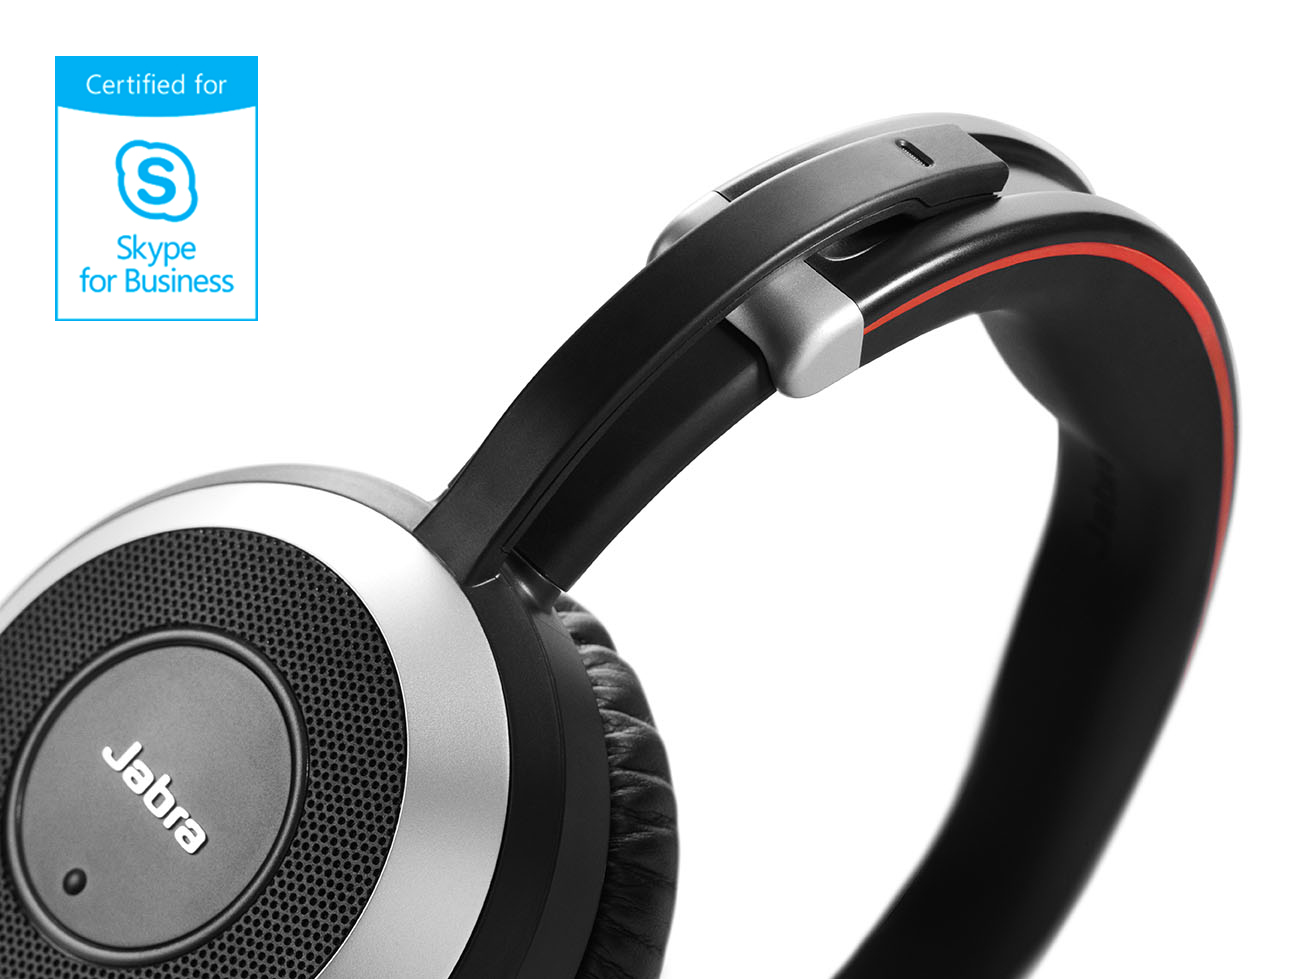 Jabra compatibile Skype for Business e nuova Intelligent Call Transfer